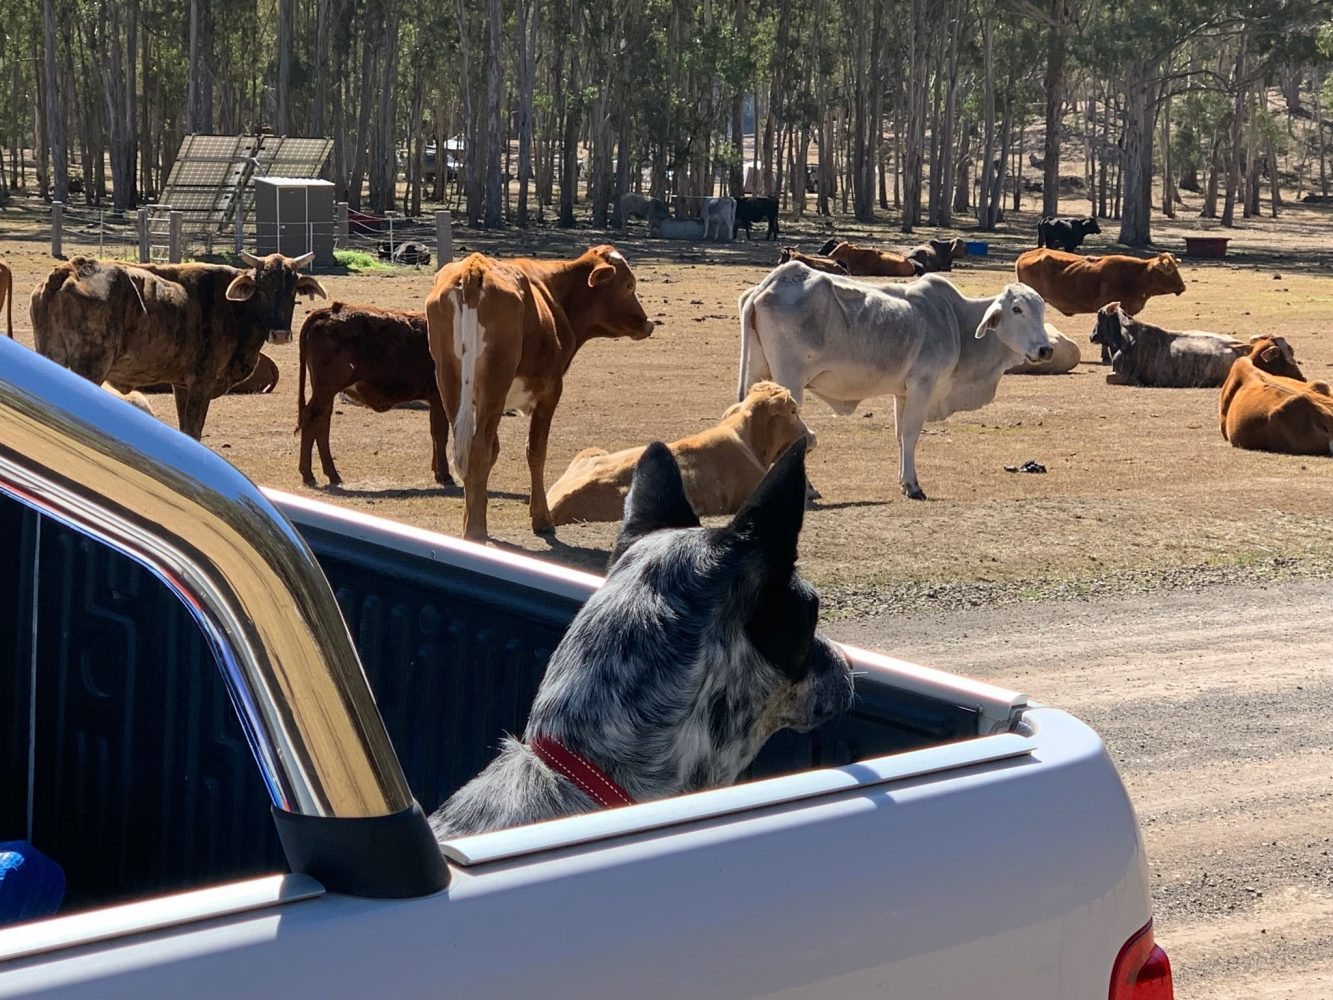 Explorer rv with Cows